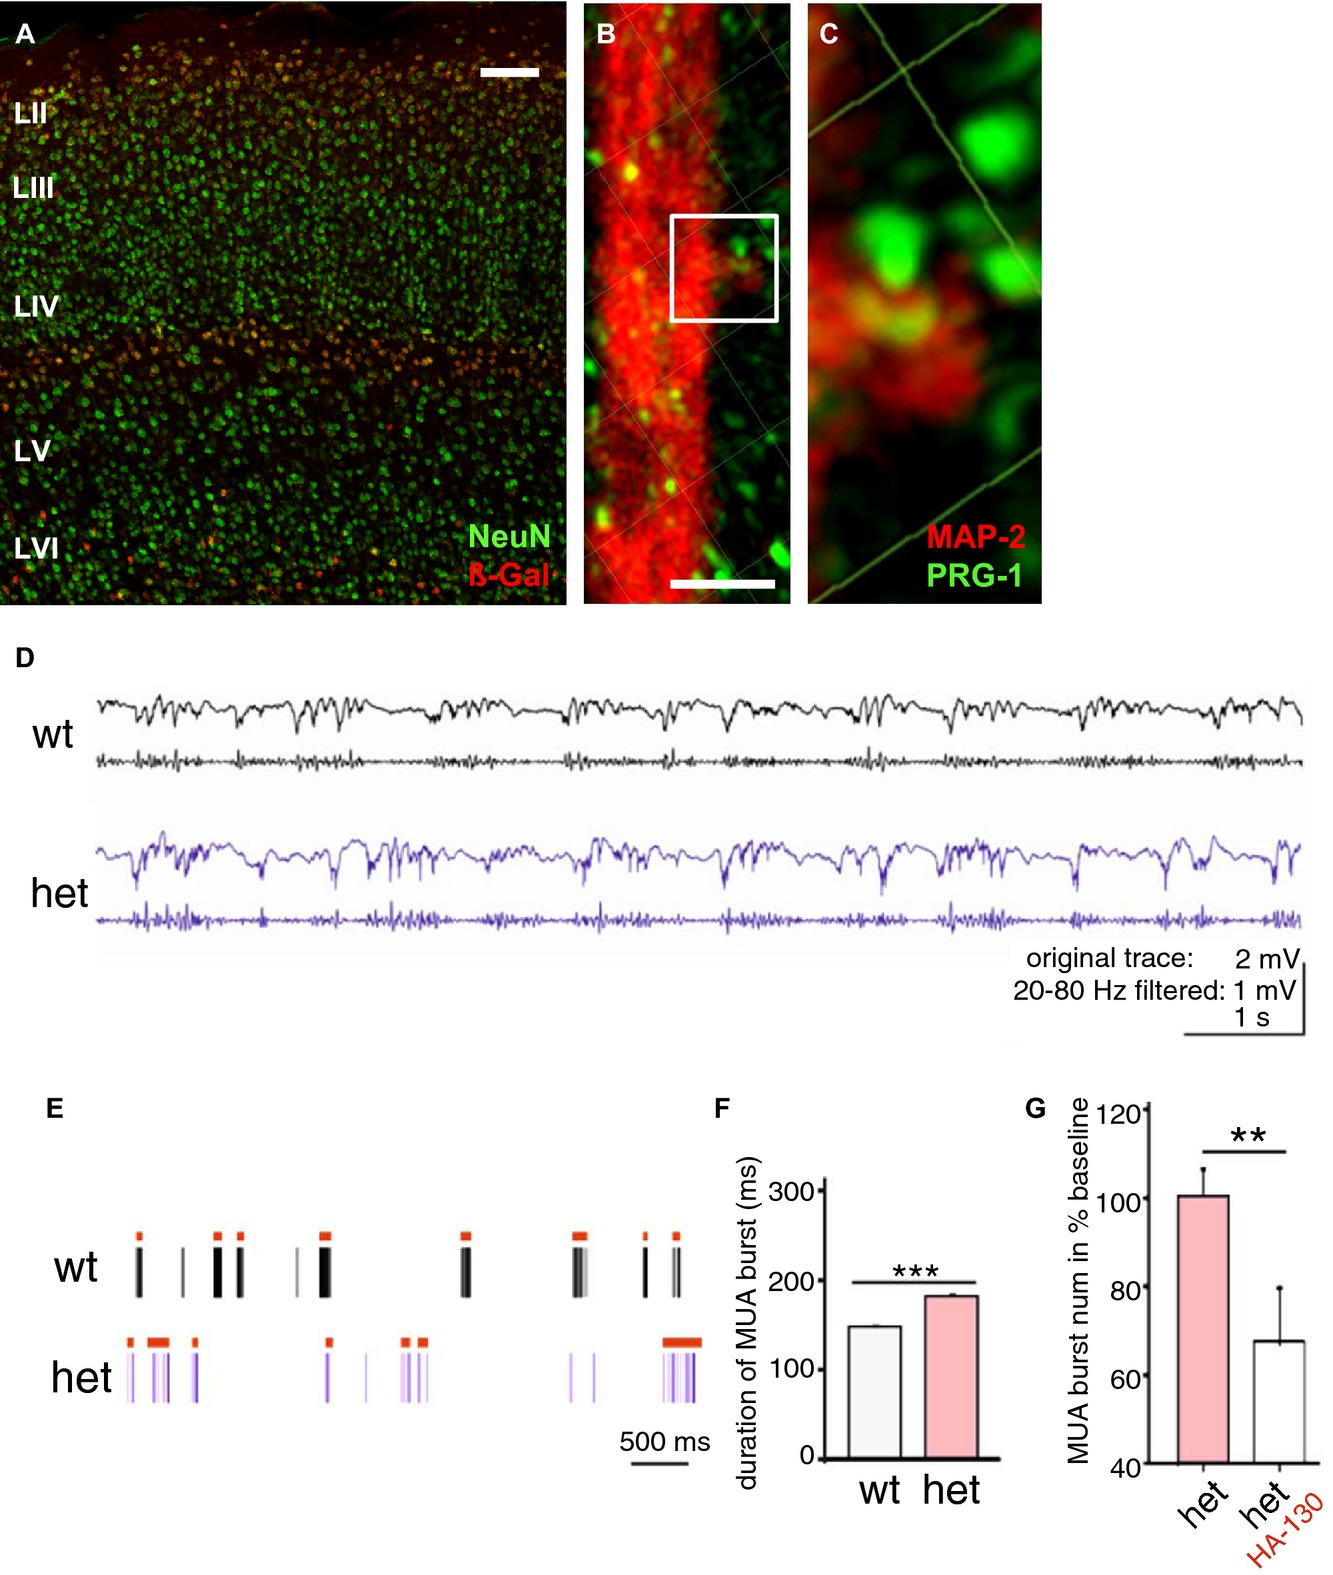 Molecular cause and functional impact of altered synaptic lipid signaling due to a prg‐1 gene SNP | EMBO Molecular Medicine